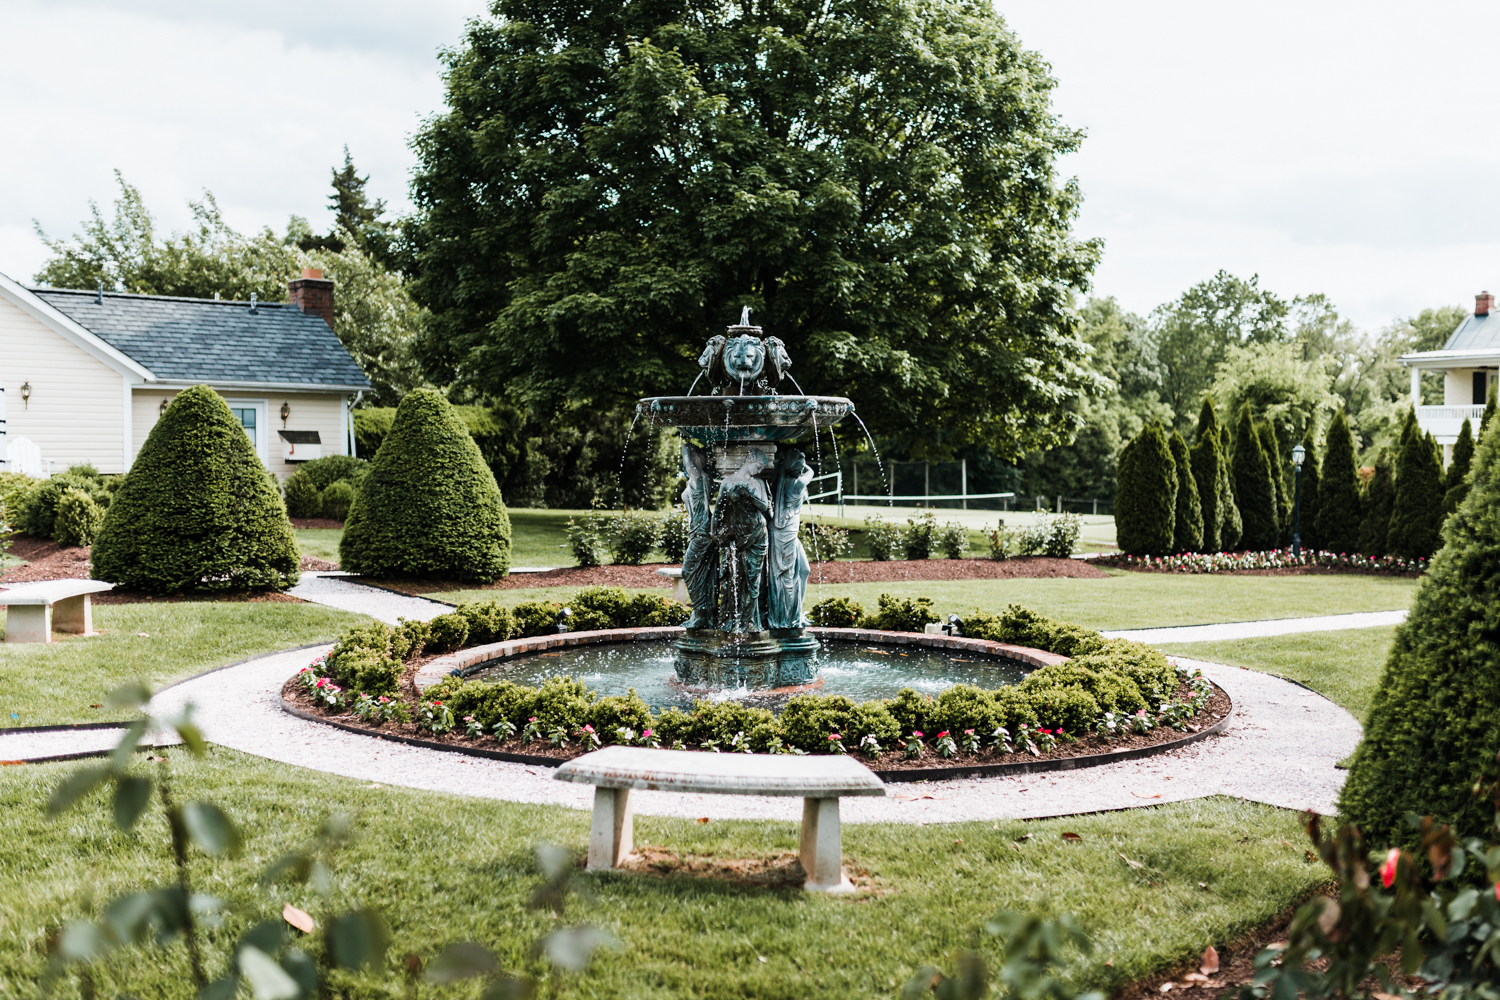 garden estate wedding venues in Carroll County, Maryland - best wedding photography in MD